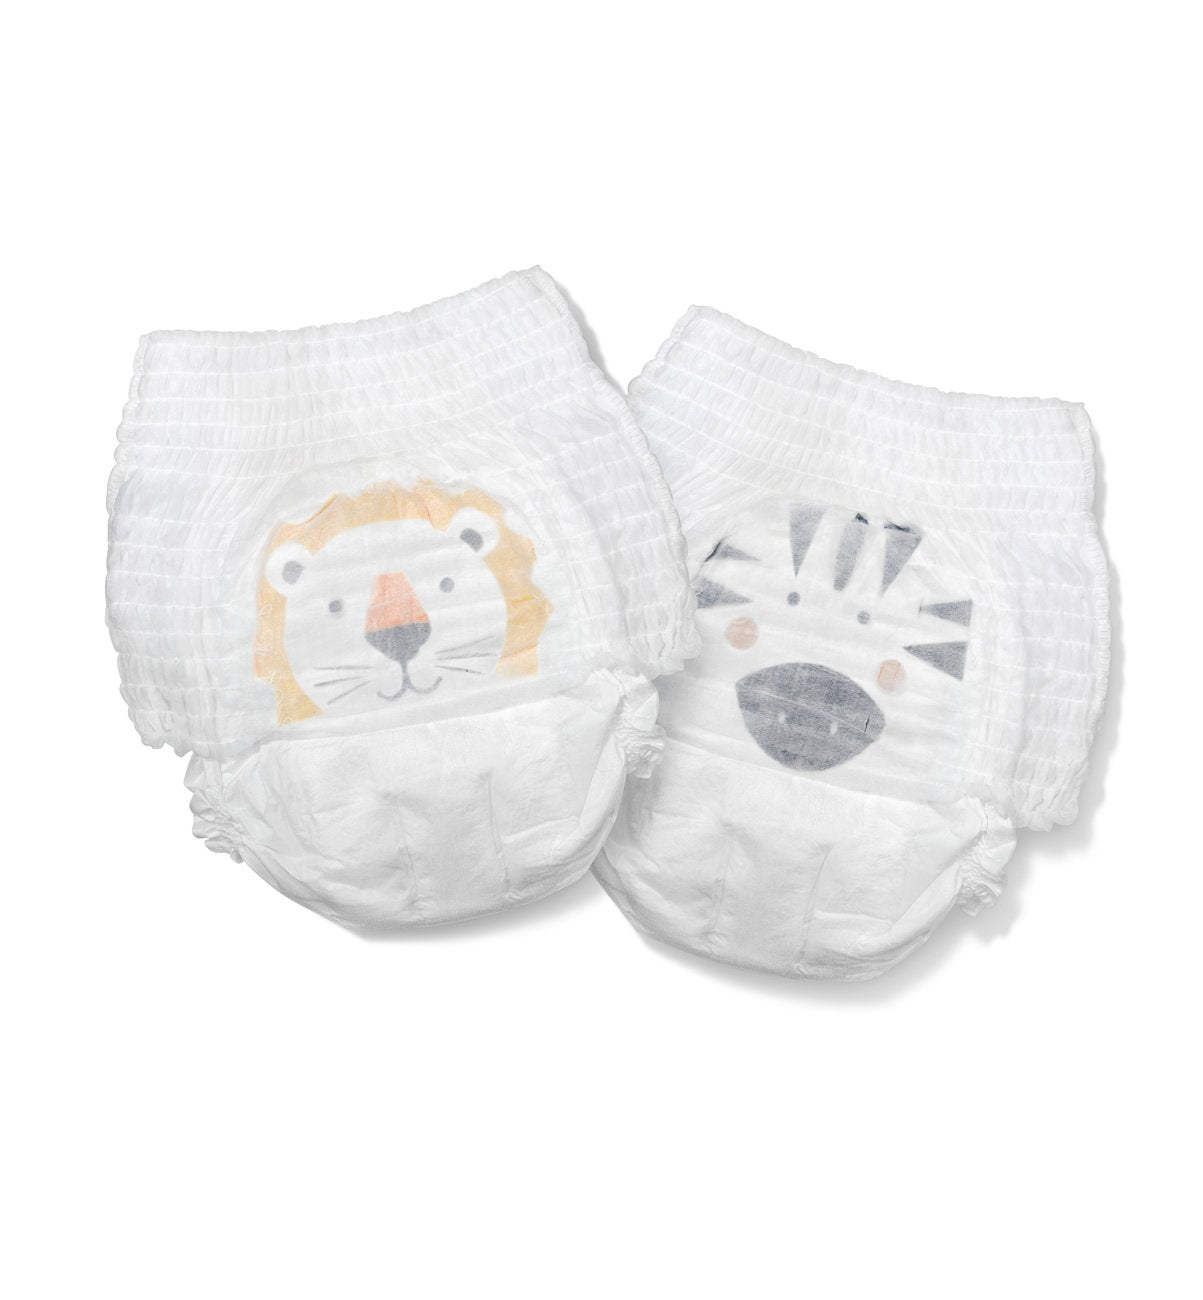 Hypoallergenic size 5 nappy pants